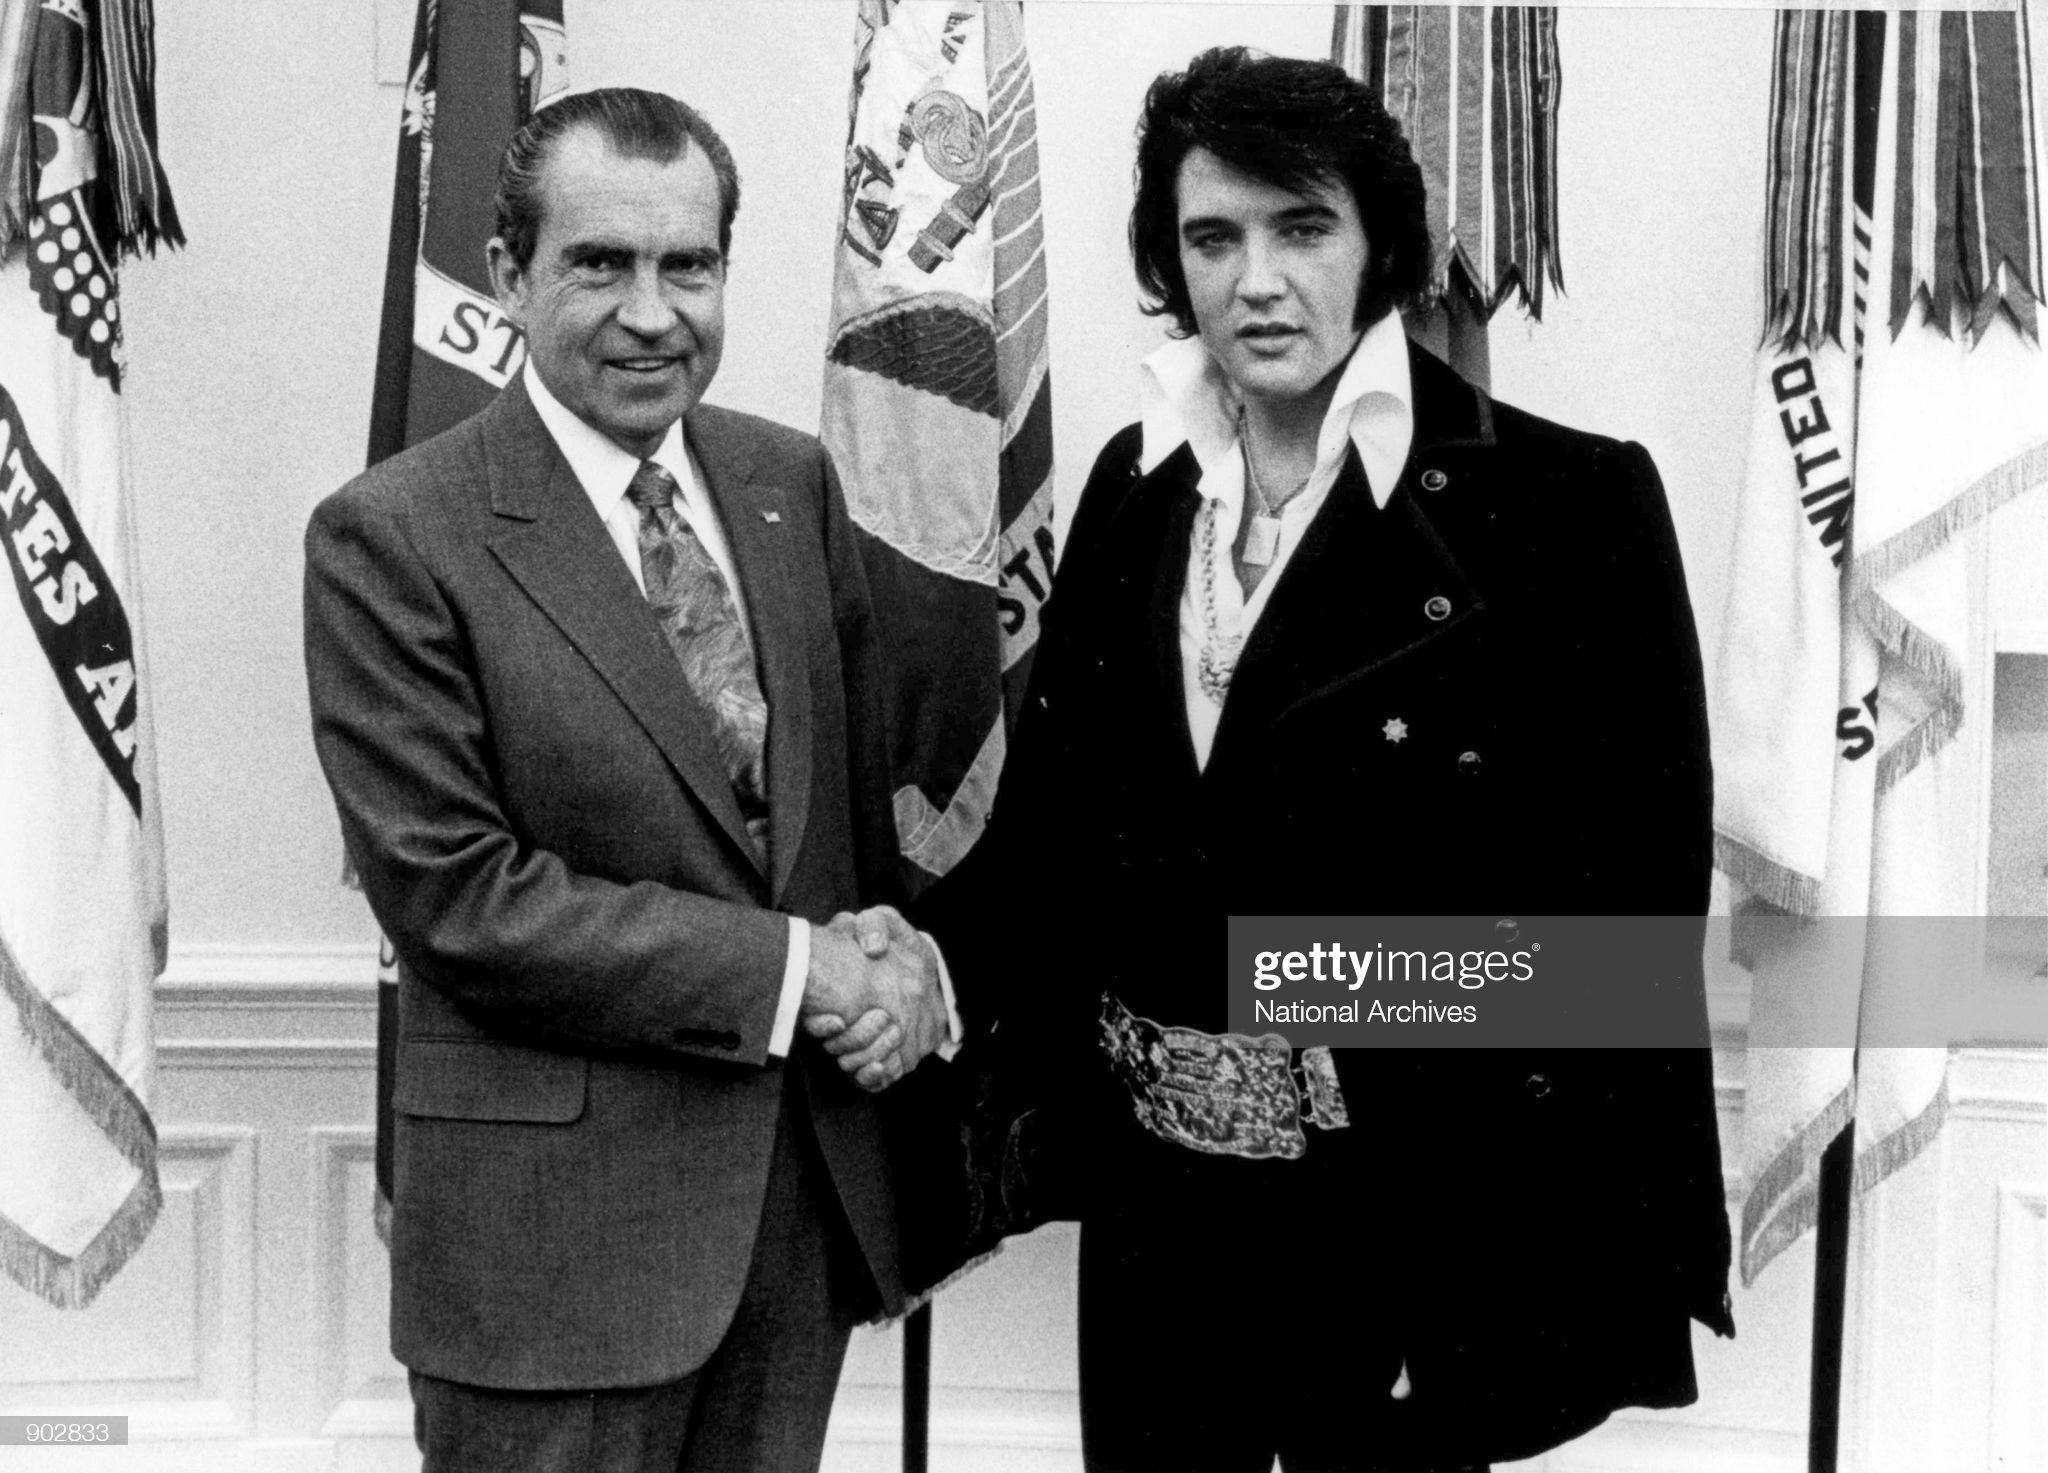 ¿Cuánto mide Richard Nixon? - Altura - Real height President-richard-nixon-meets-with-elvis-presley-december-21-1970-at-picture-id902833?s=2048x2048